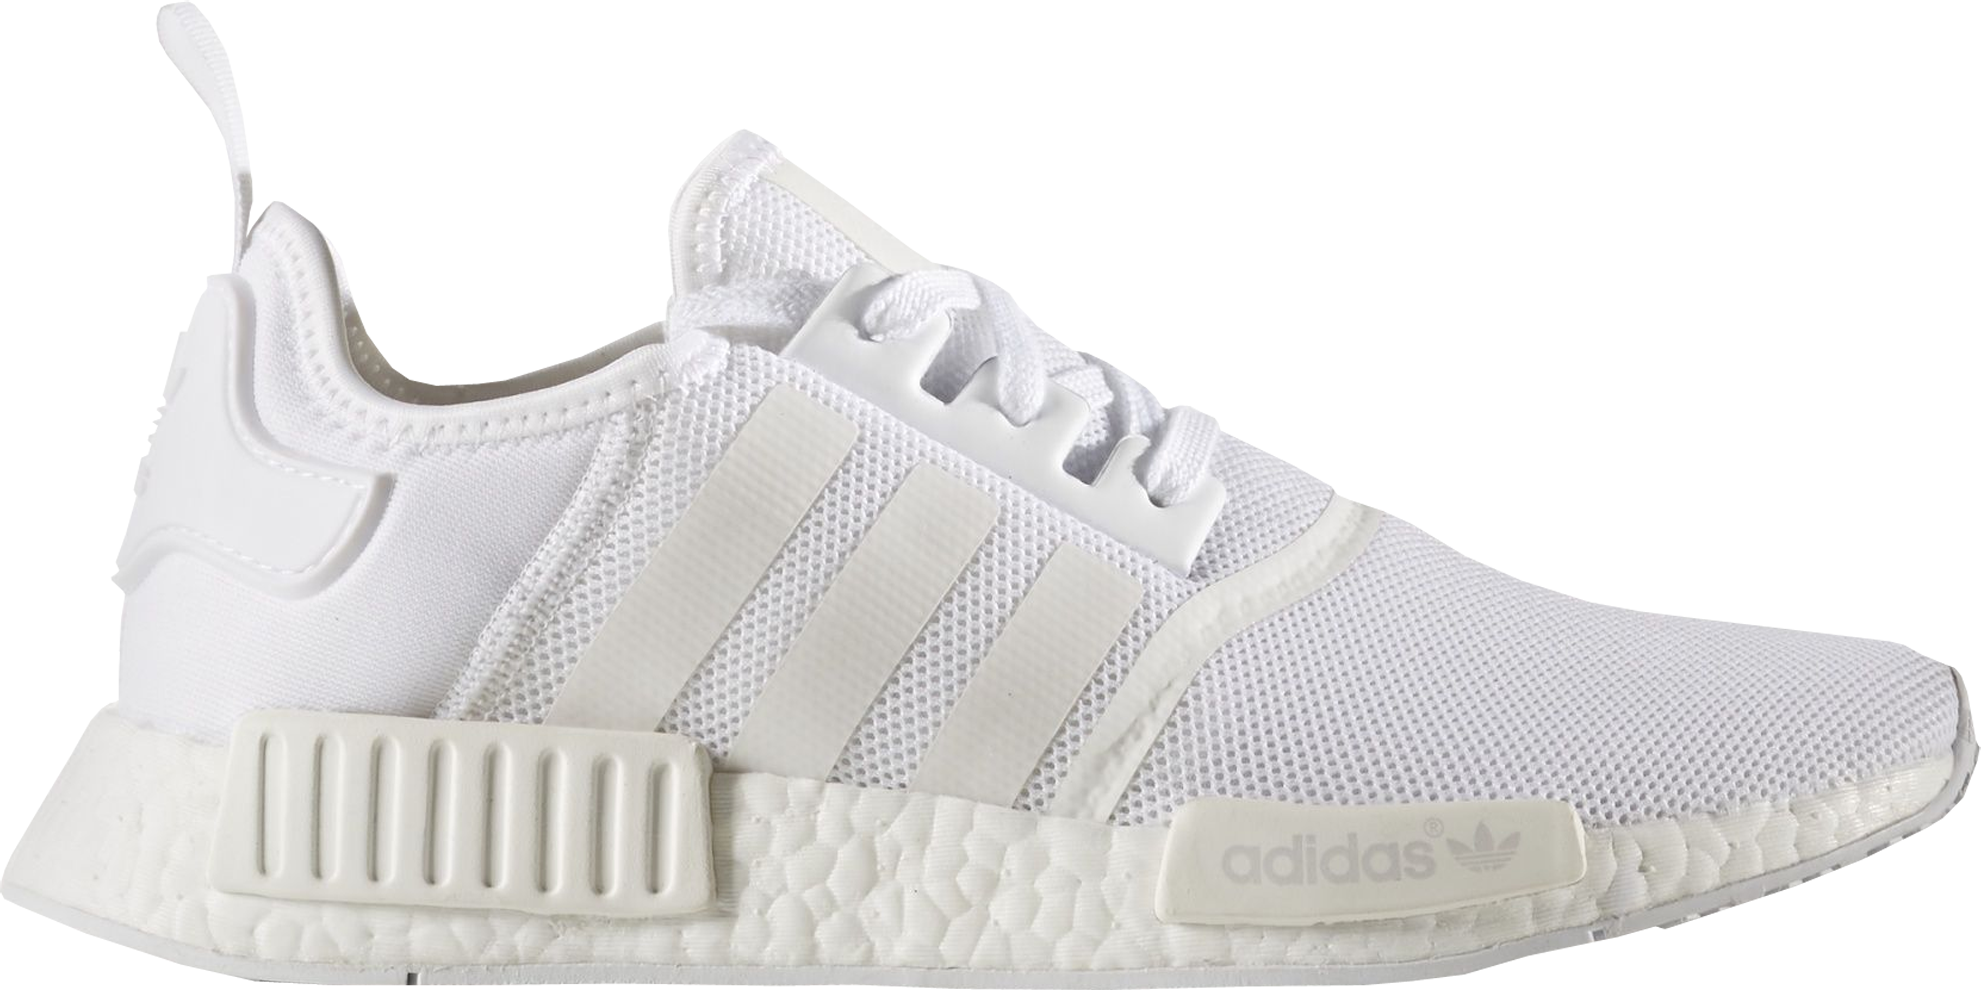 pswmic Adidas NMD R1 Triple White